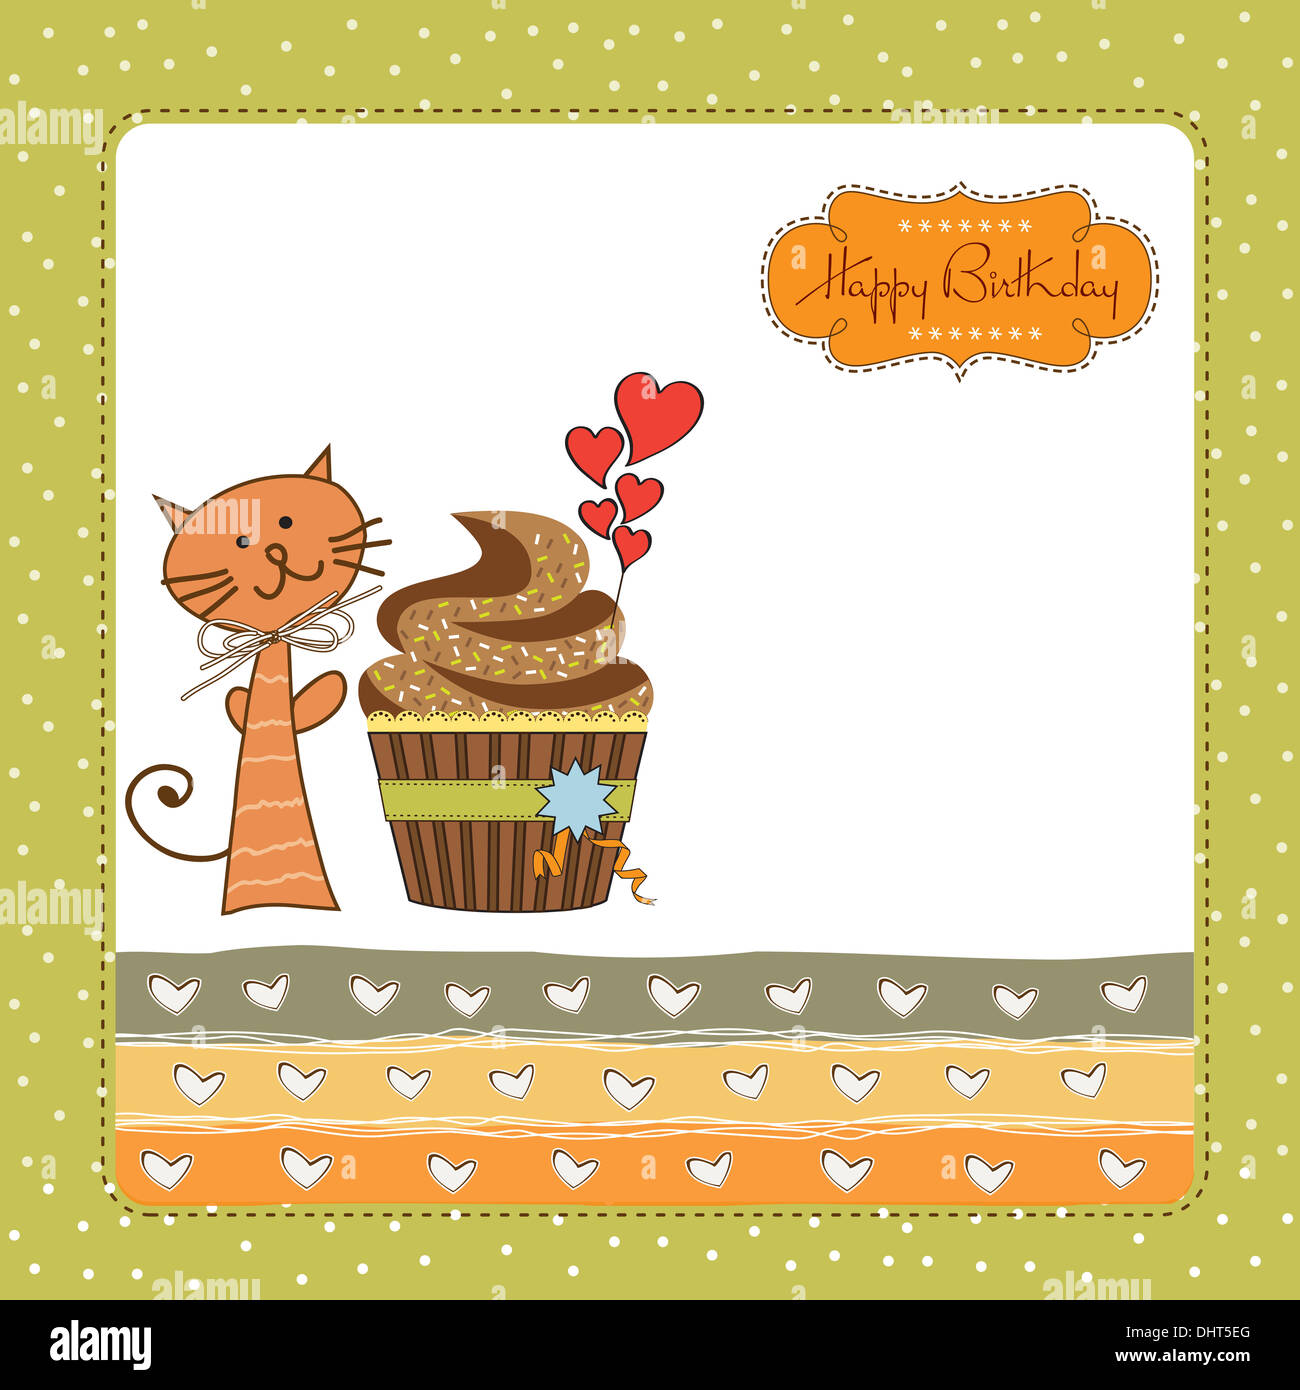 Birthday Greeting Card With Cupcake And Cat Stock Photo 62611432